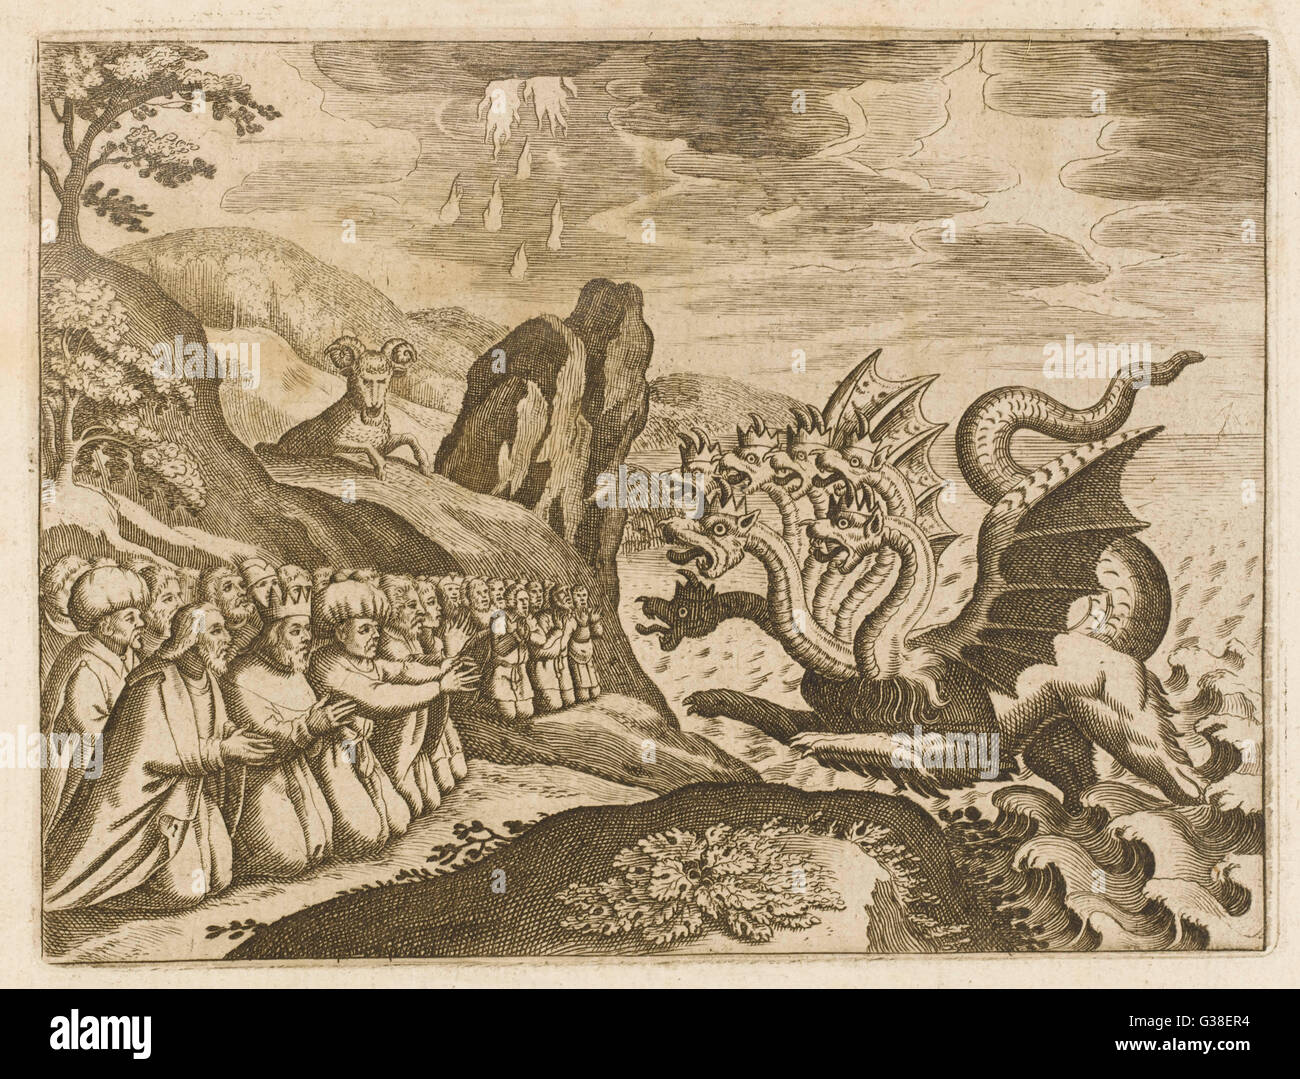 The great seven-headed beast  of the Apocalypse - Stock Image